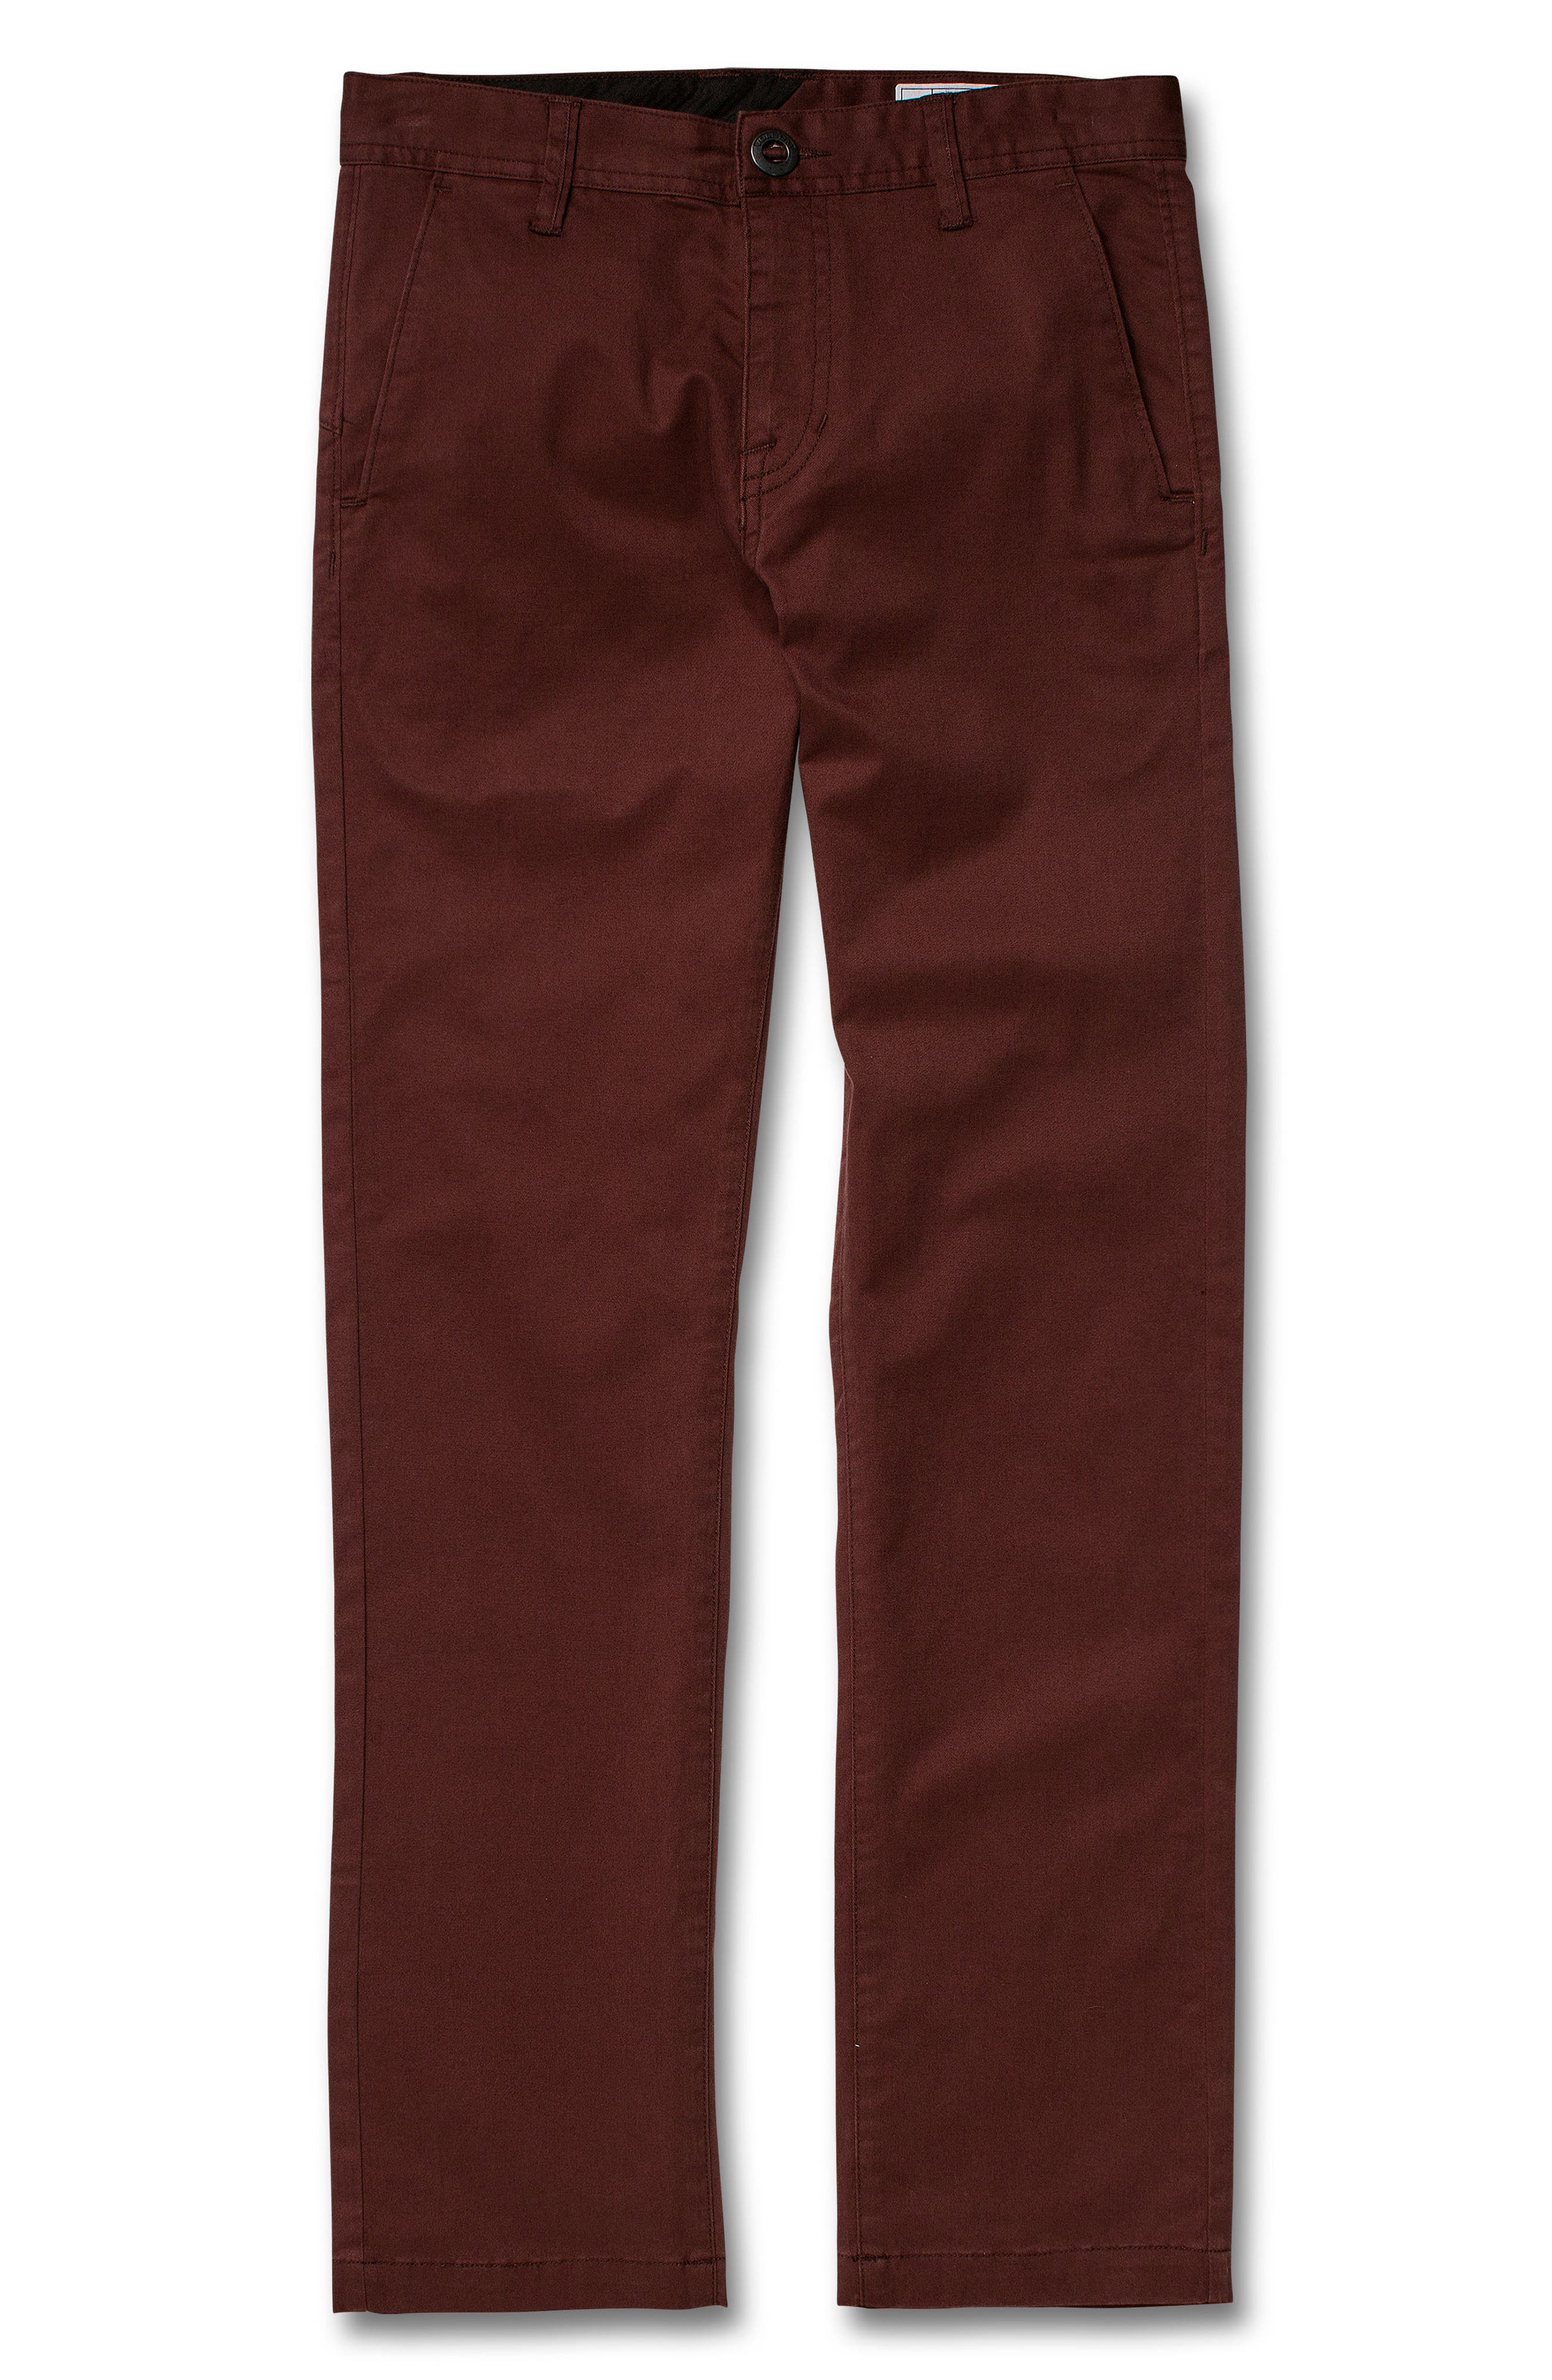 VOLCOM, Slim Fit Stretch Chinos, Main thumbnail 1, color, BROWN